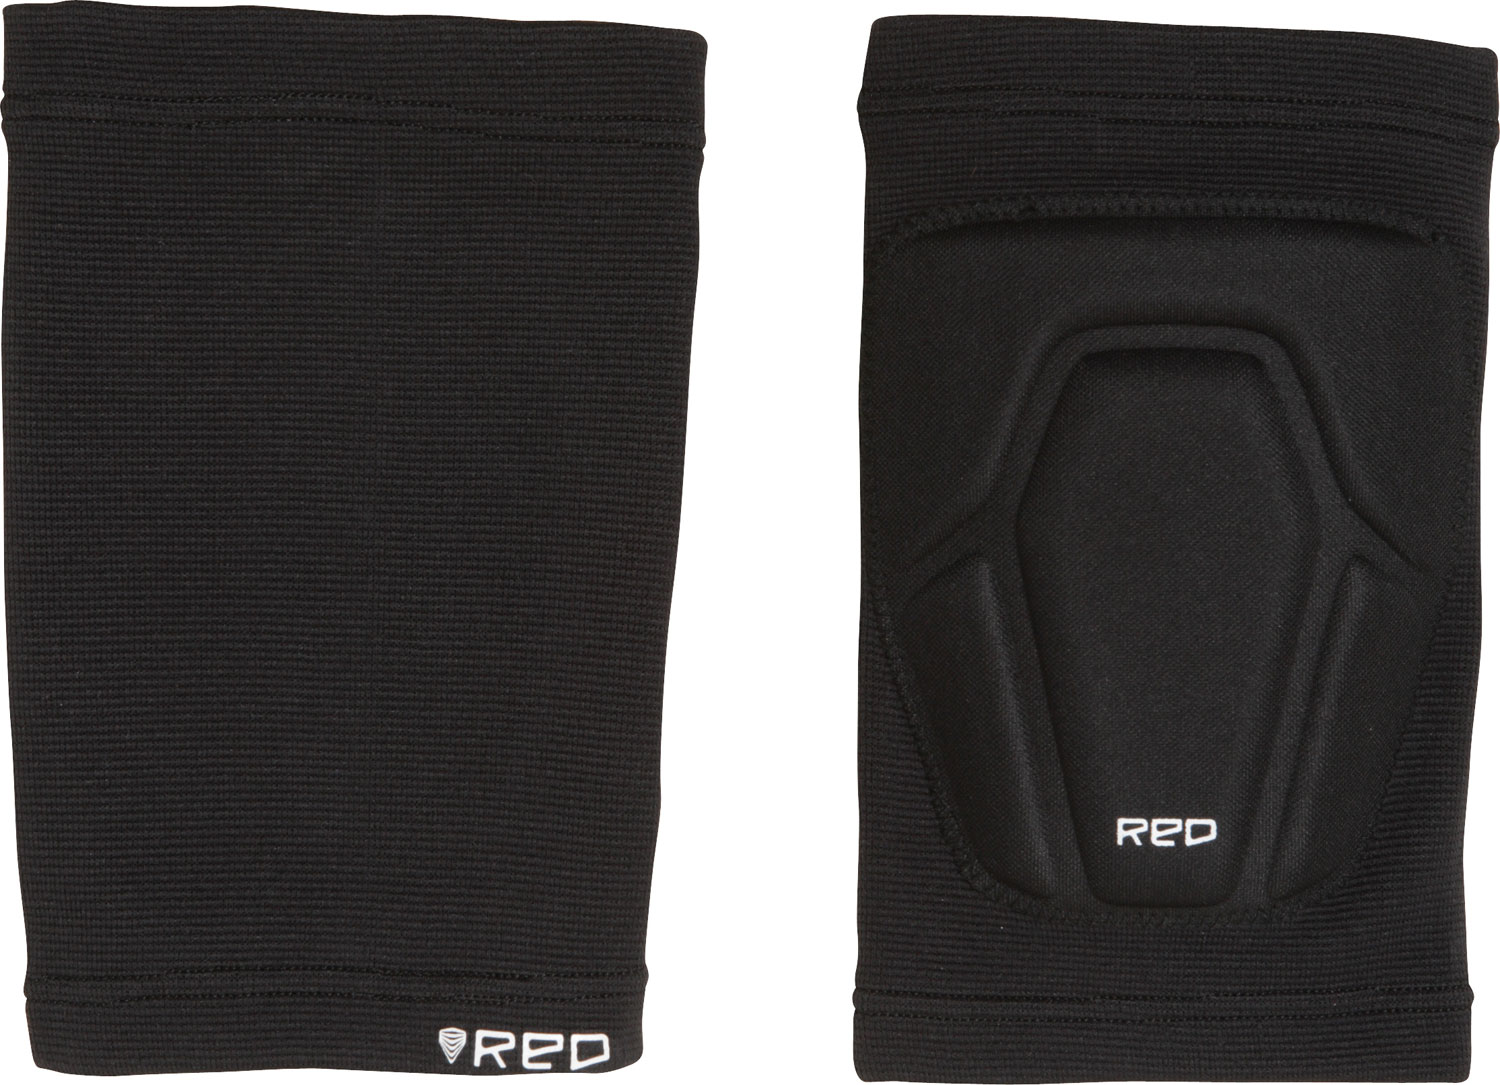 Skateboard Key Features of the Red Basic Knee Pads: Low-Profile, Thin EVA Knee Protection Slip-On Design - $19.95